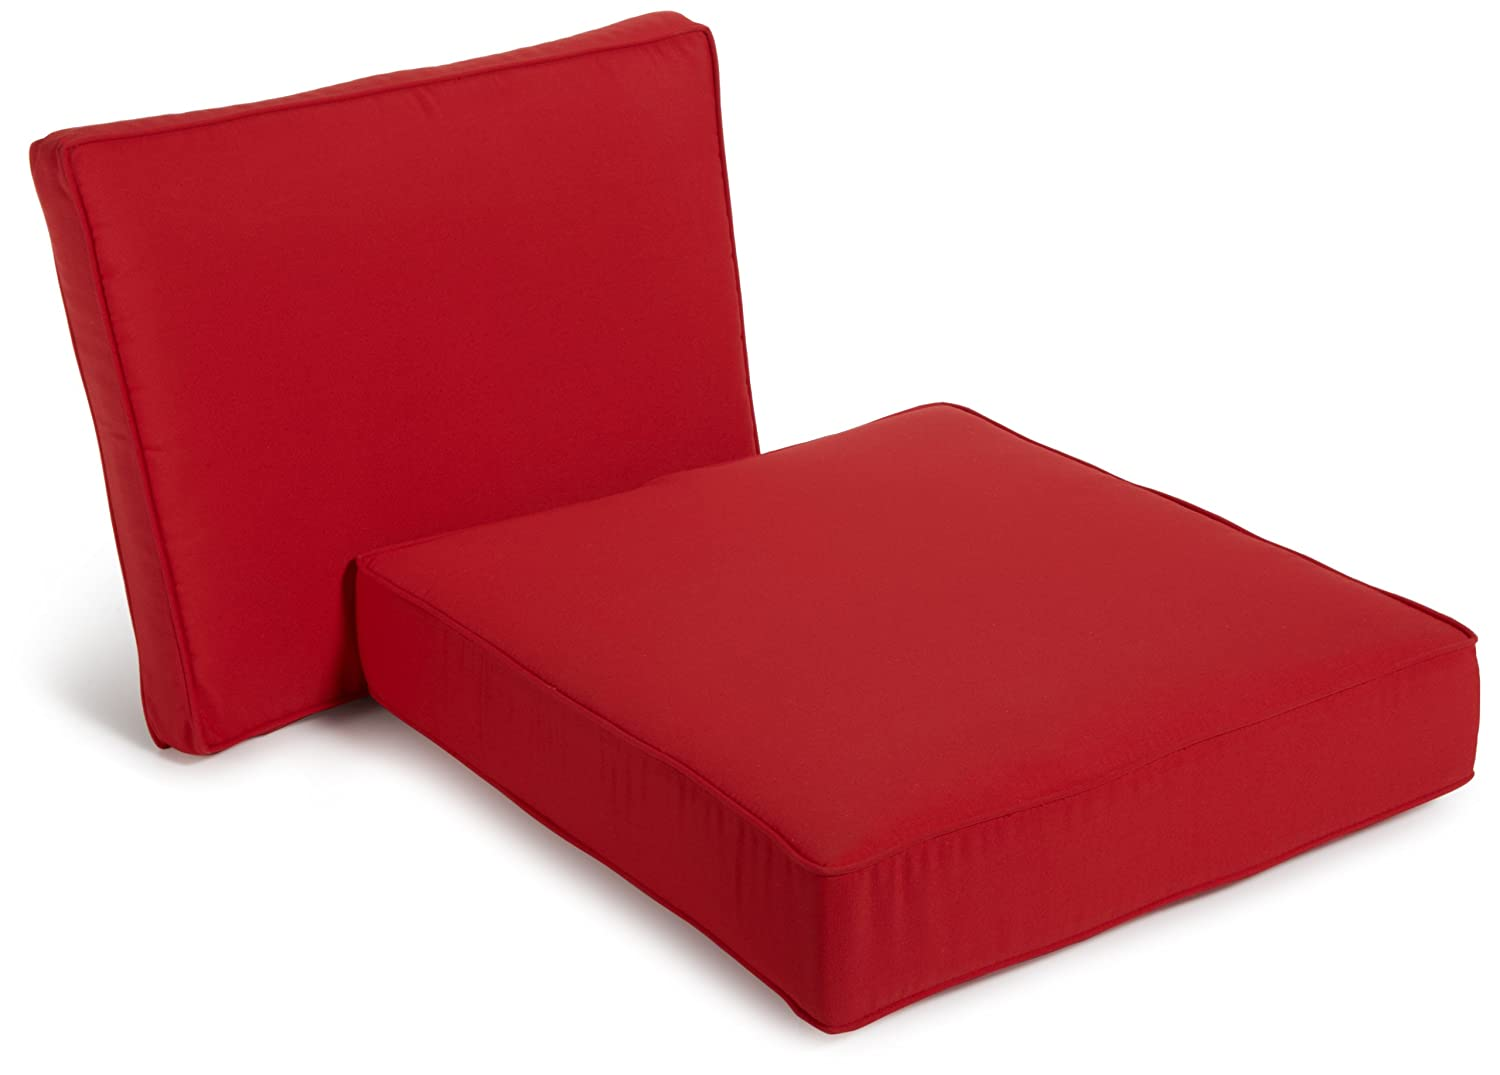 Deep Seat Chair Sunbrella Cushions W Stain Resistant Acrylic Covers Red Outdo